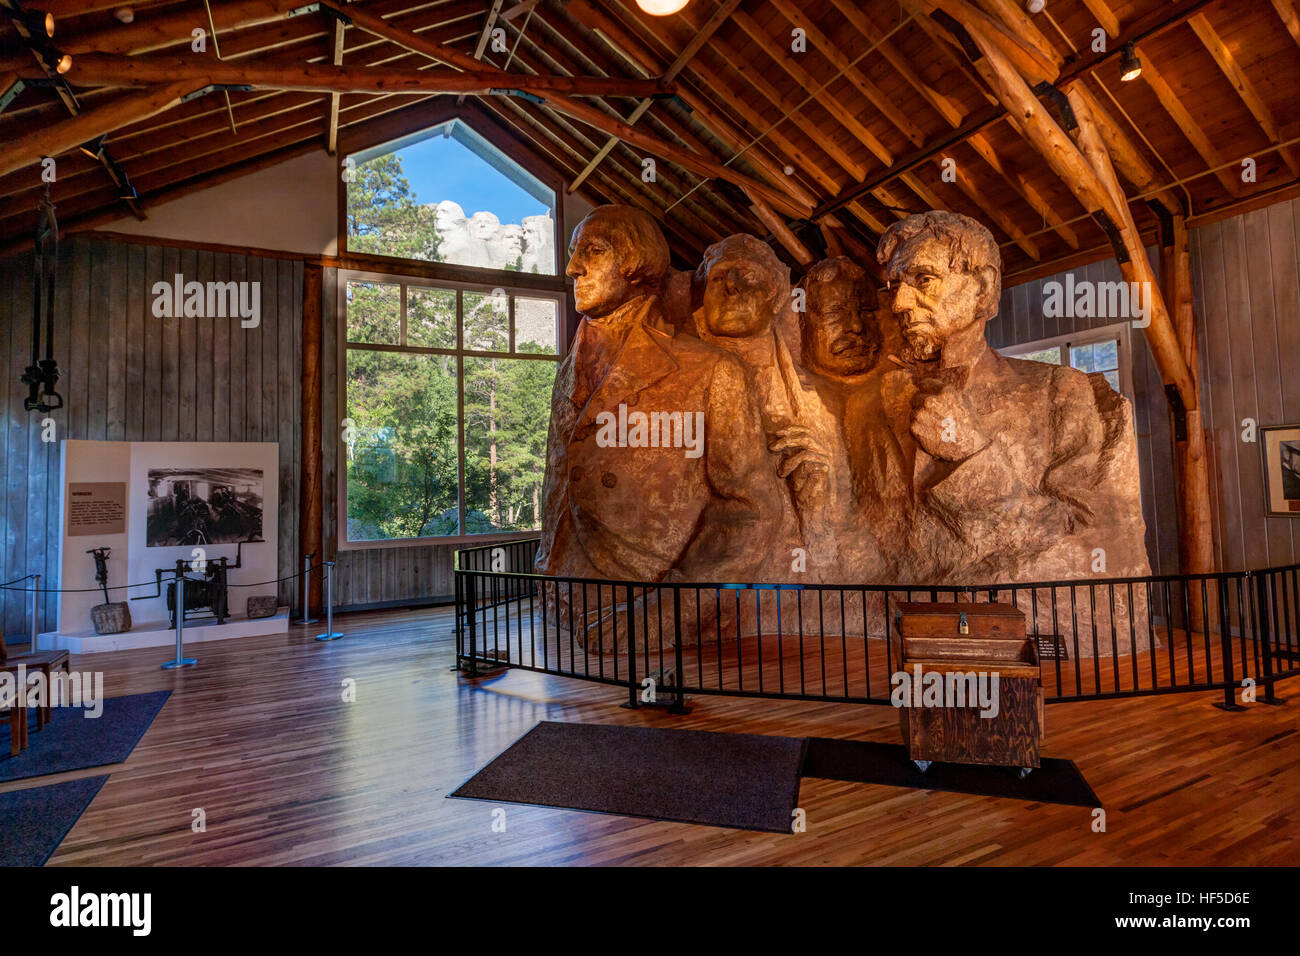 https://c7.alamy.com/comp/HF5D6E/mount-rushmore-national-memorial-view-on-mount-rushmore-from-the-sculptors-HF5D6E.jpg